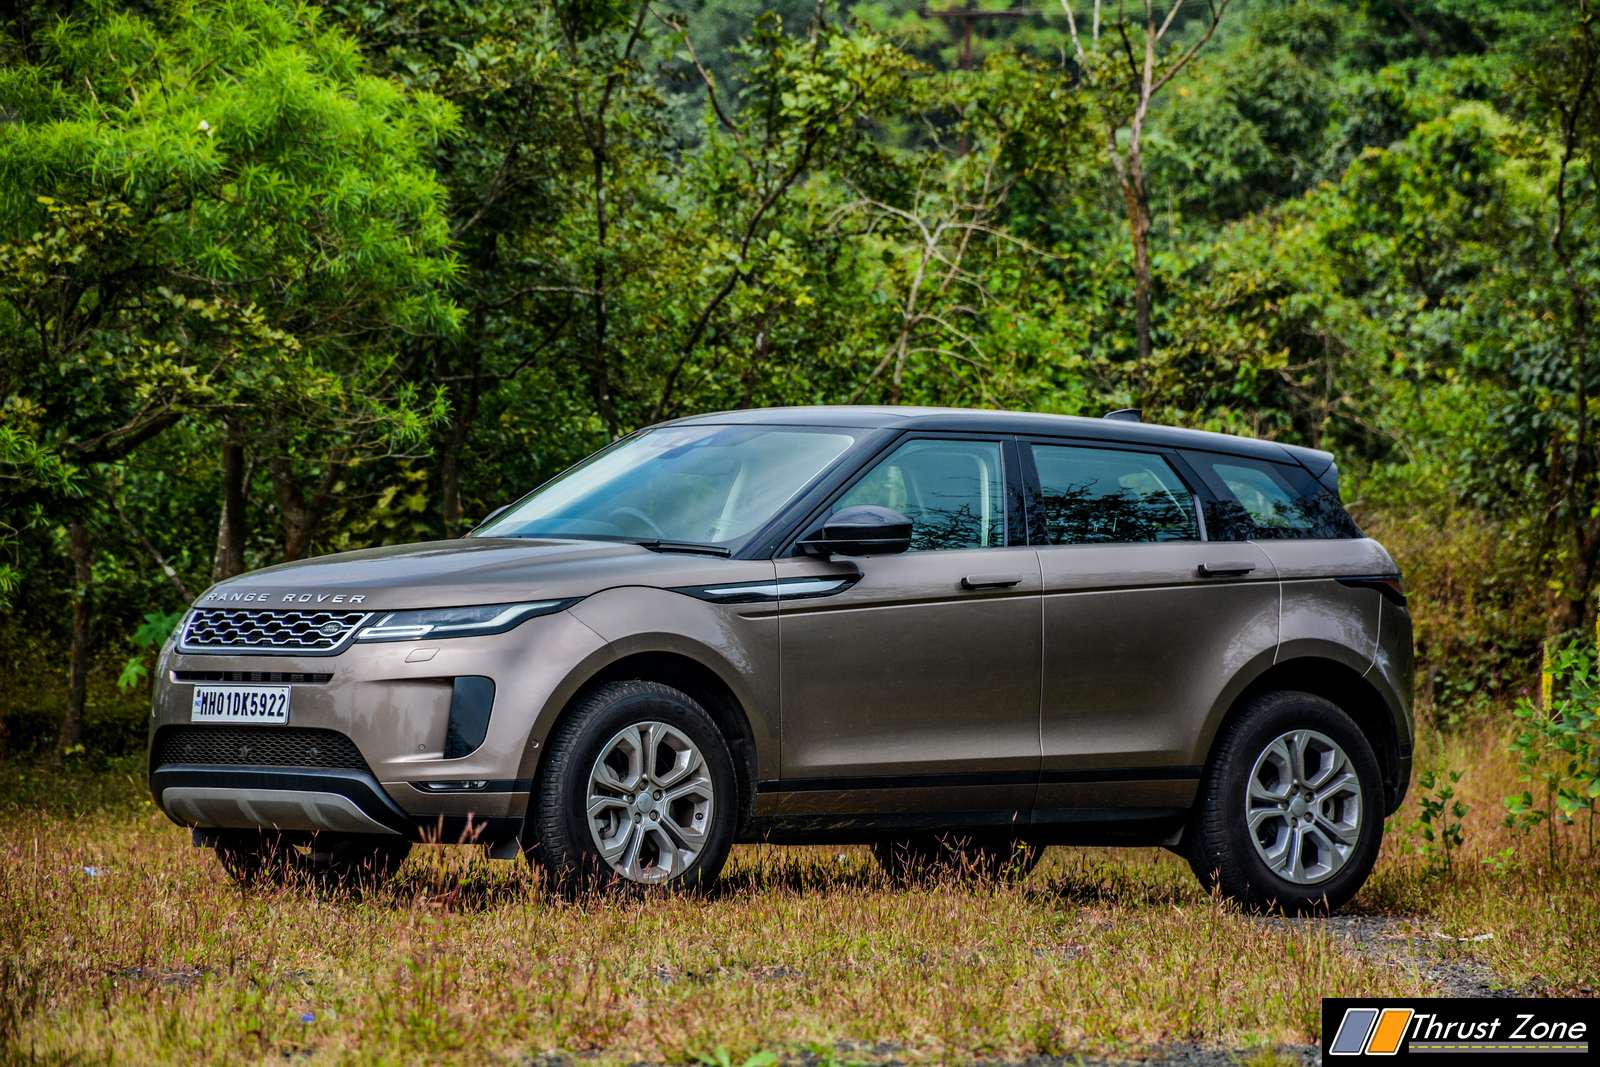 2020-Range-Rover-Evoque-Diesel-India-Review-8